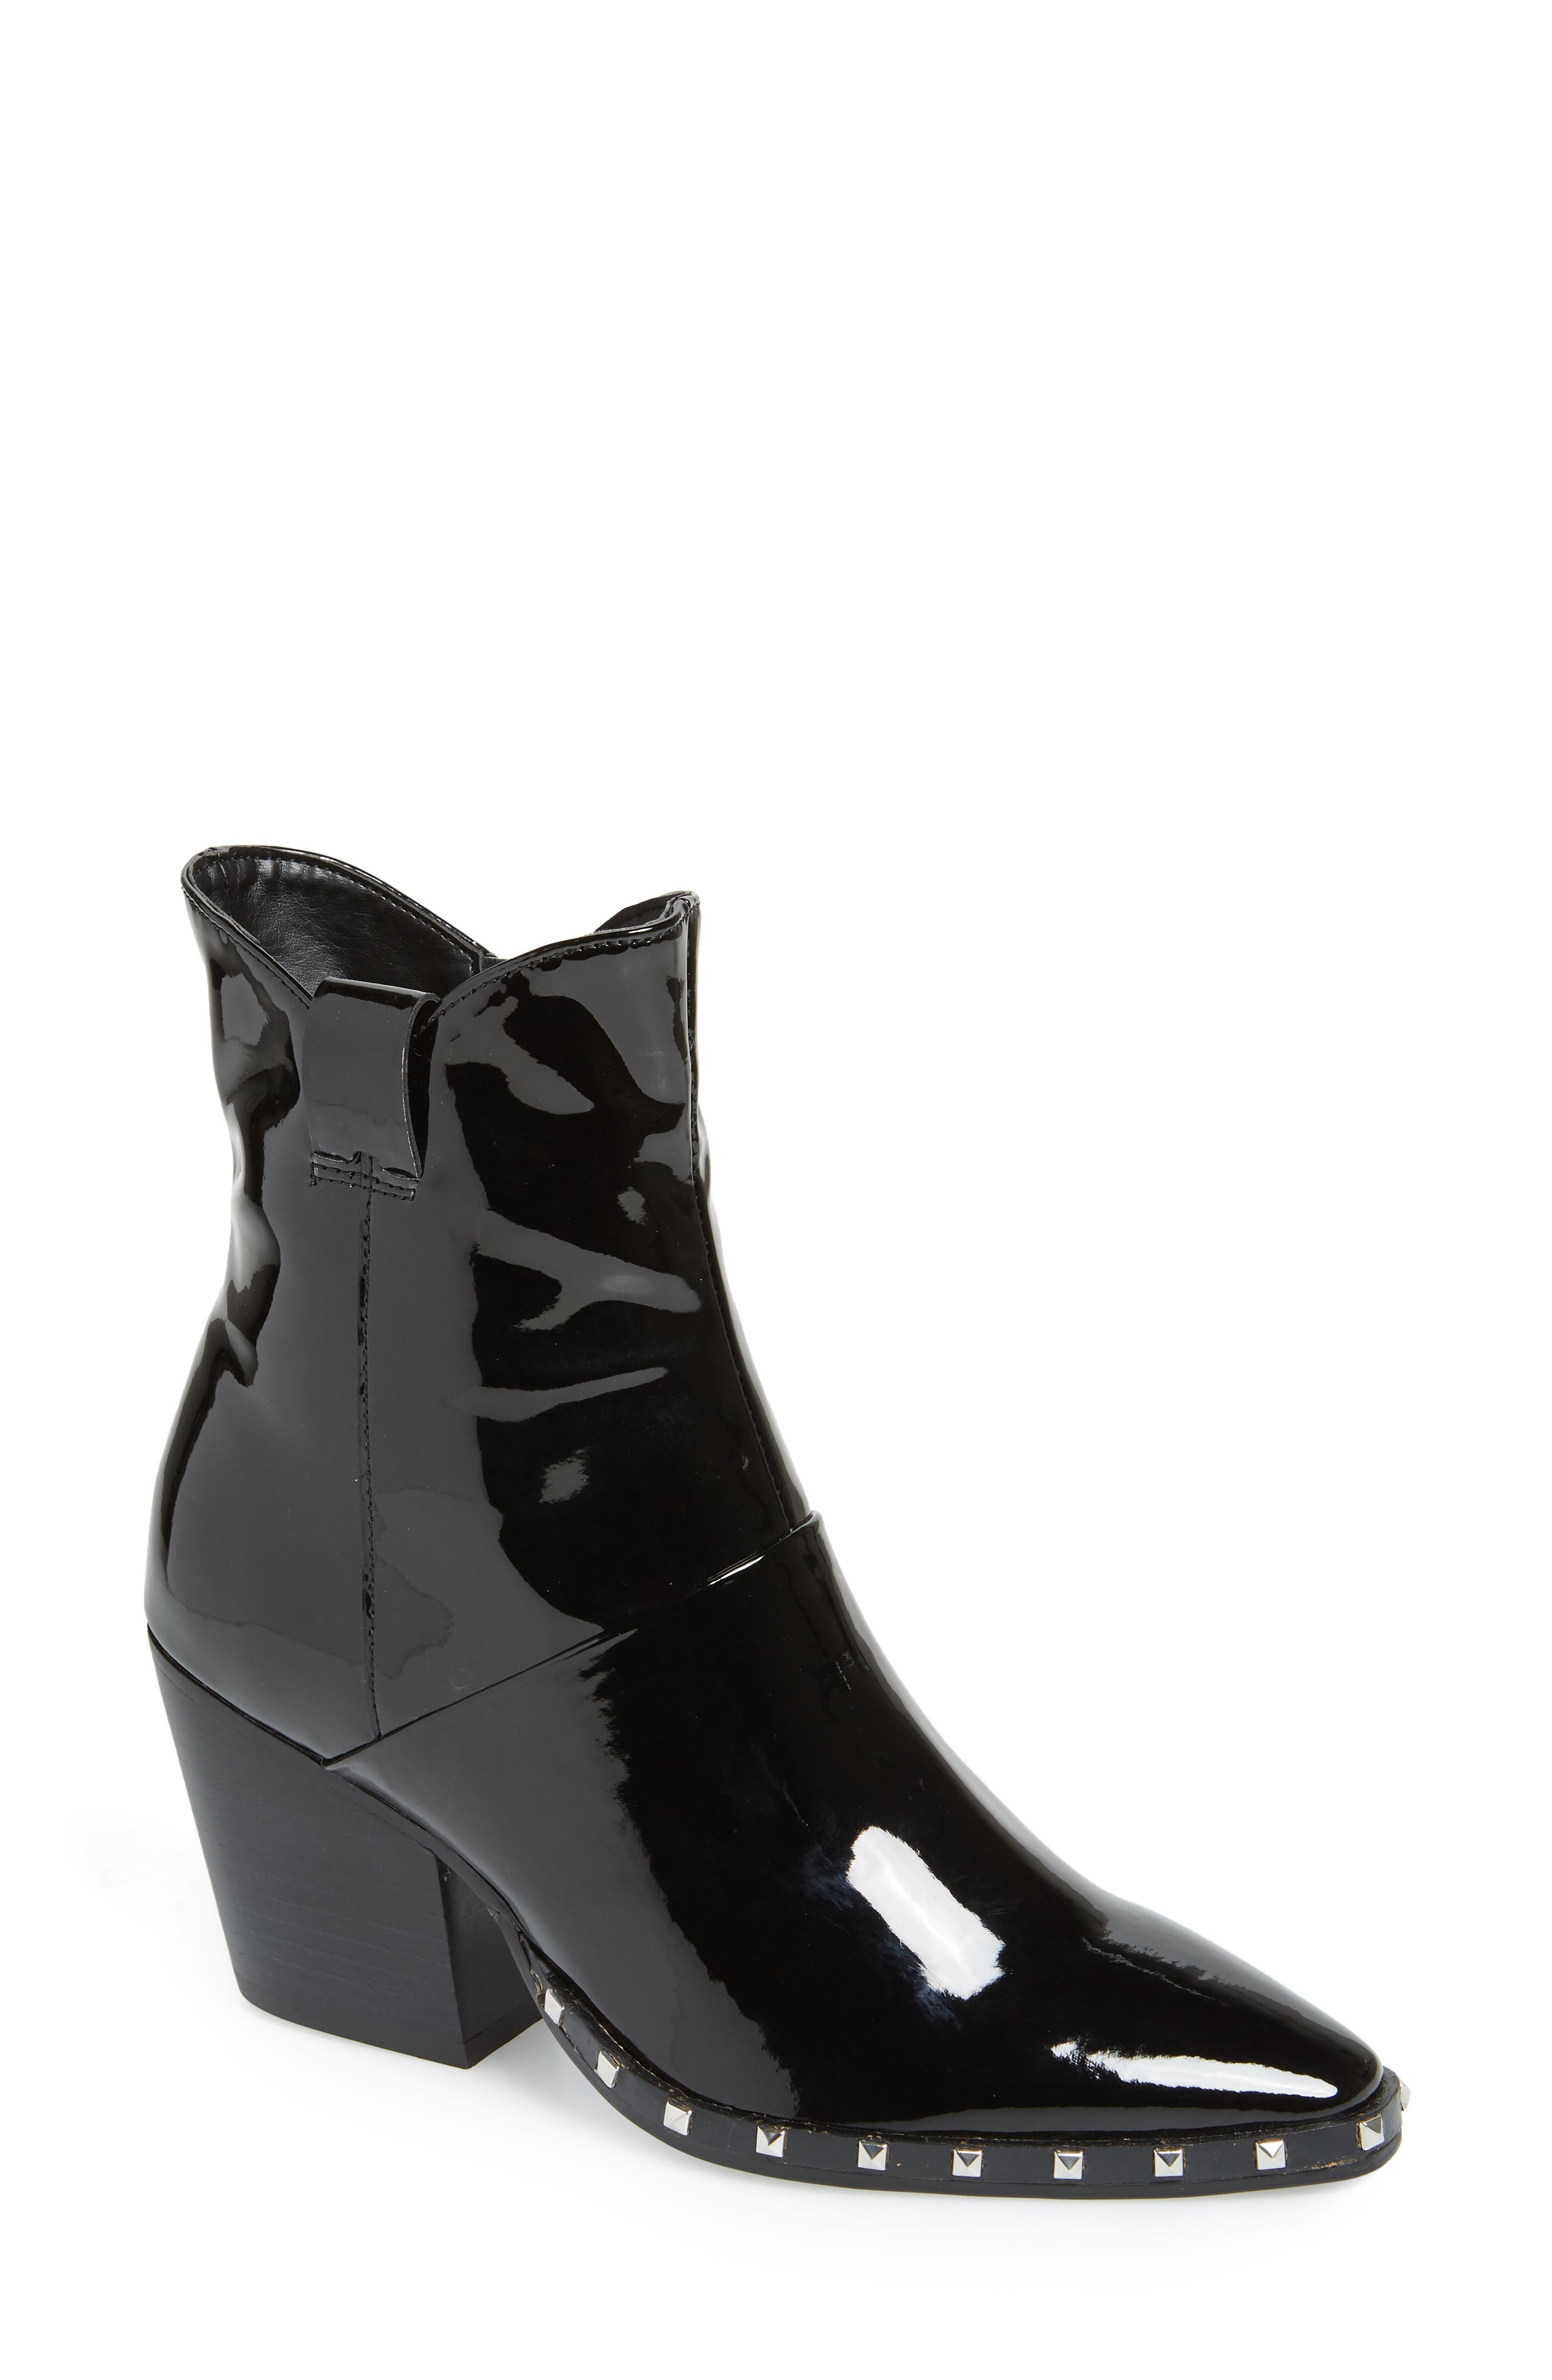 TONY BIANCO Haines Studded Bootie in Midnight Patent Leather